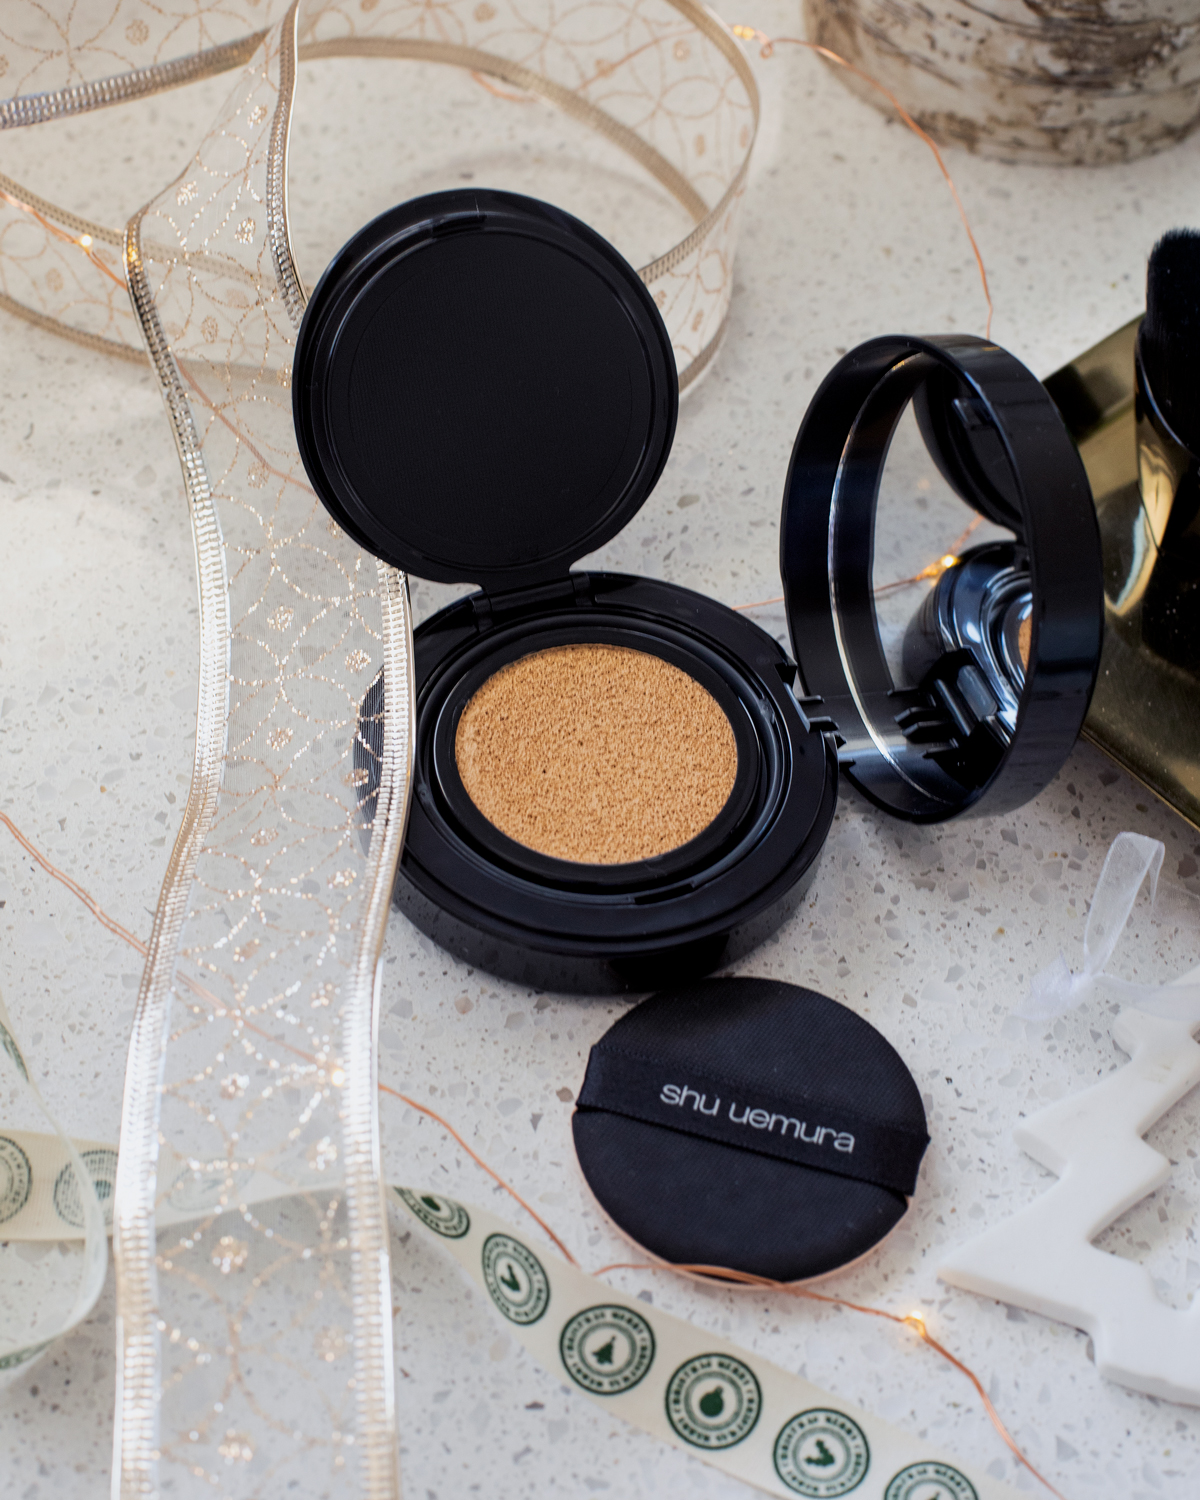 2018 Christmas gift guide Inspiring Wit blog featuring beauty gift ideas Shu Uemura beauty cushion foundation